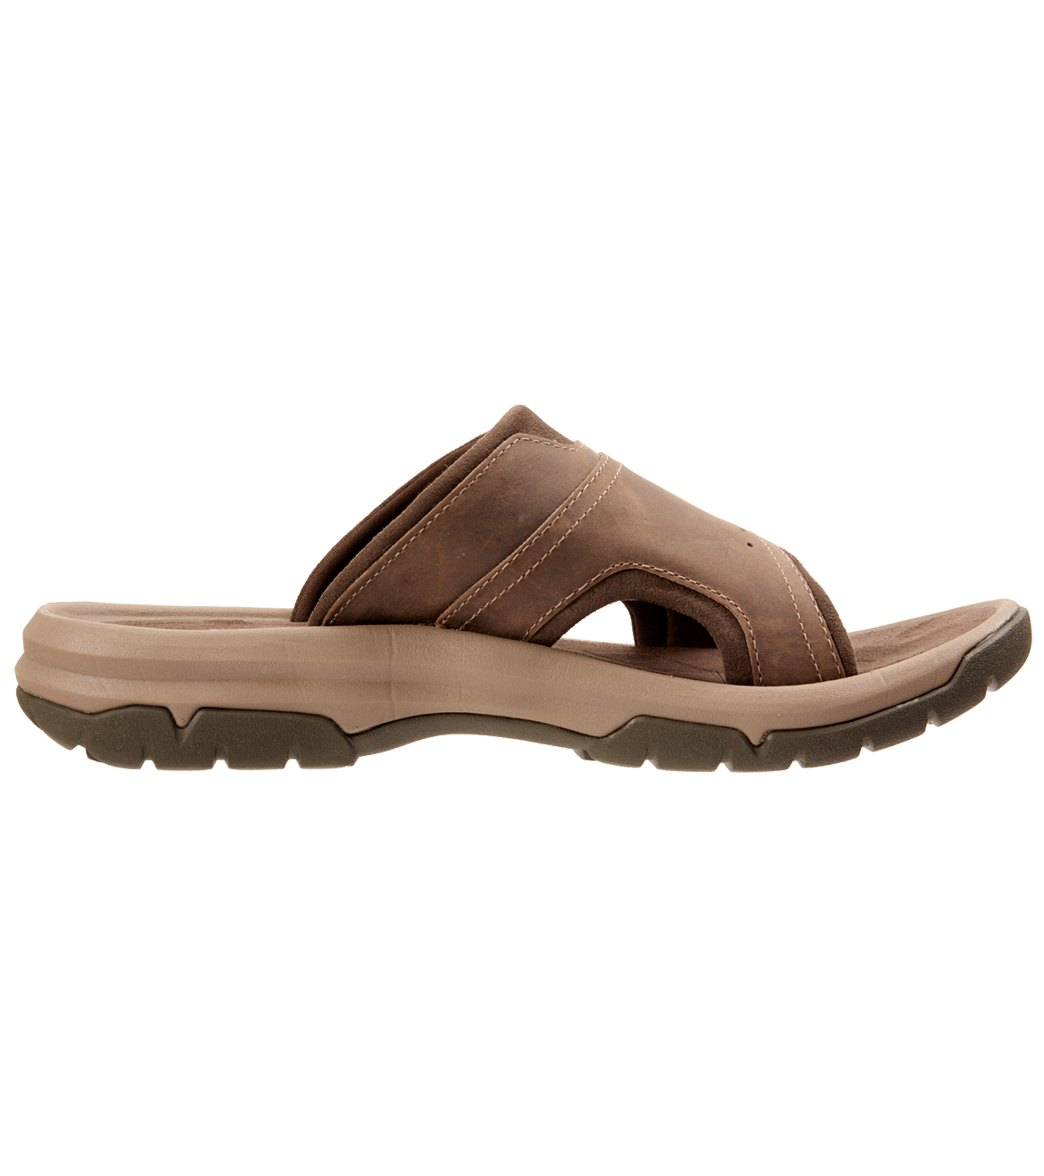 27becba28e7b Teva Men s Langdon Slide Sandal at SwimOutlet.com - Free Shipping